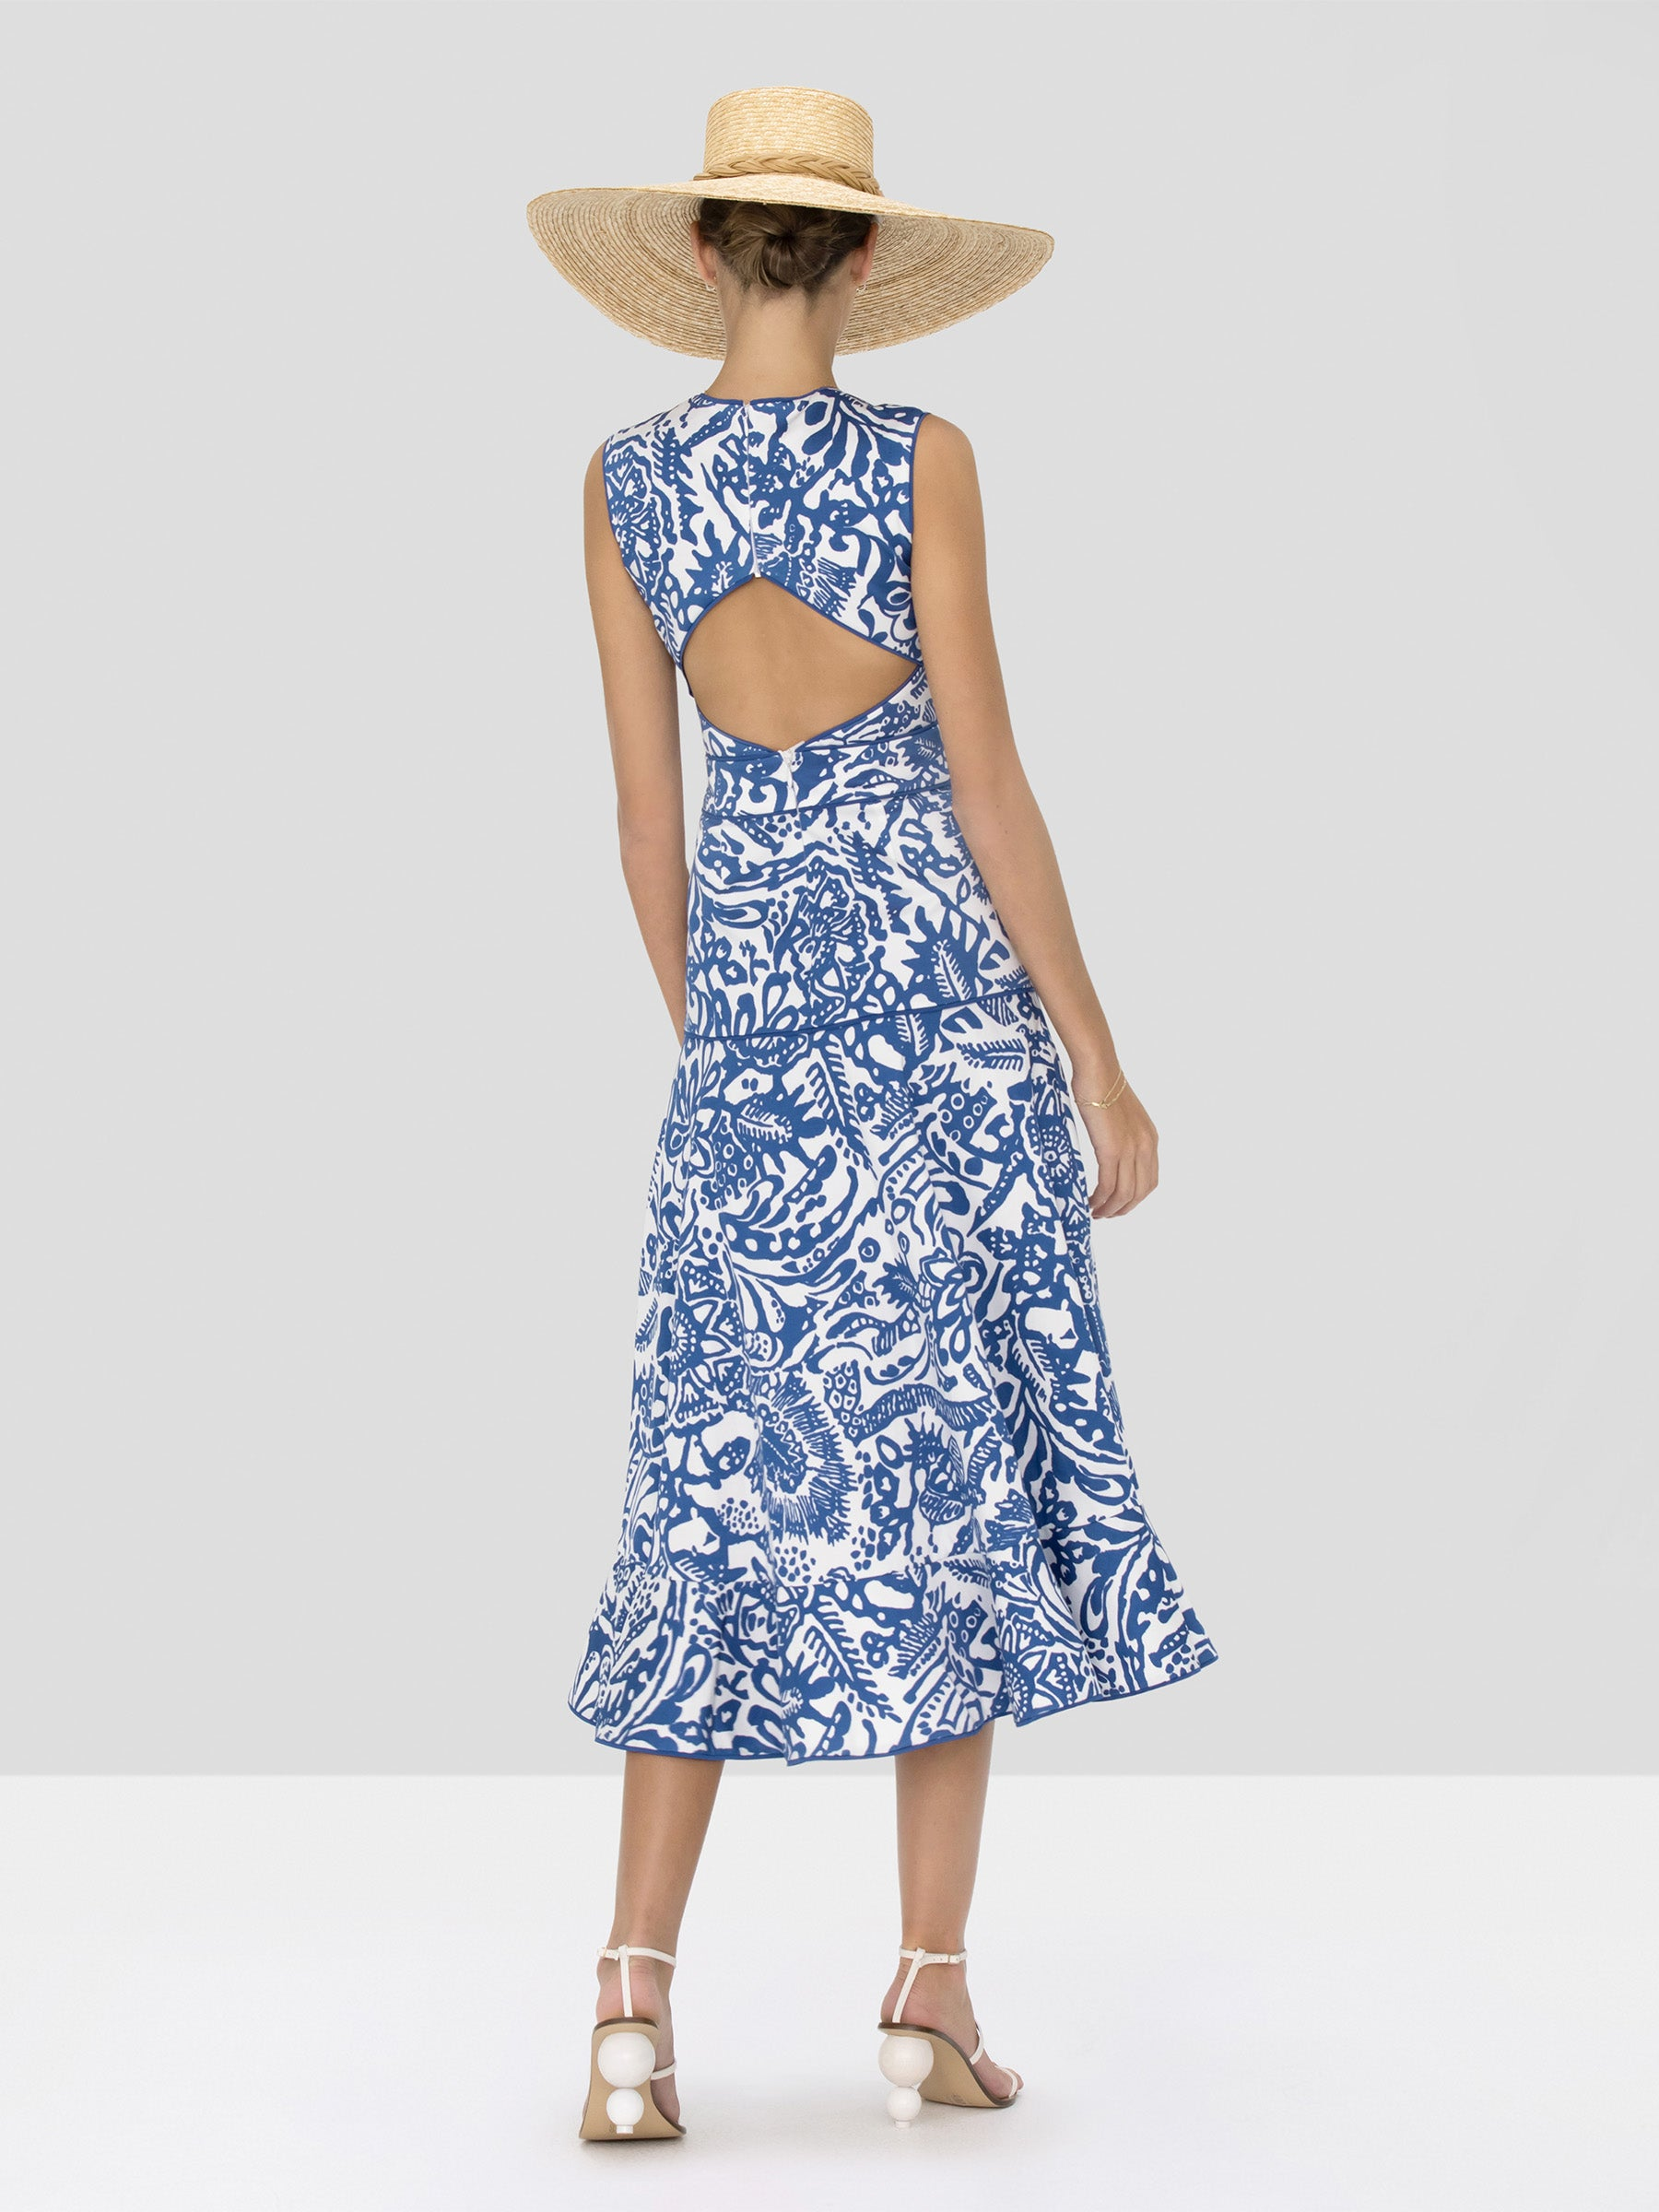 Alexis Marianna Dress in Tropical Blue from Spring Summer 2020 Collection - Rear View